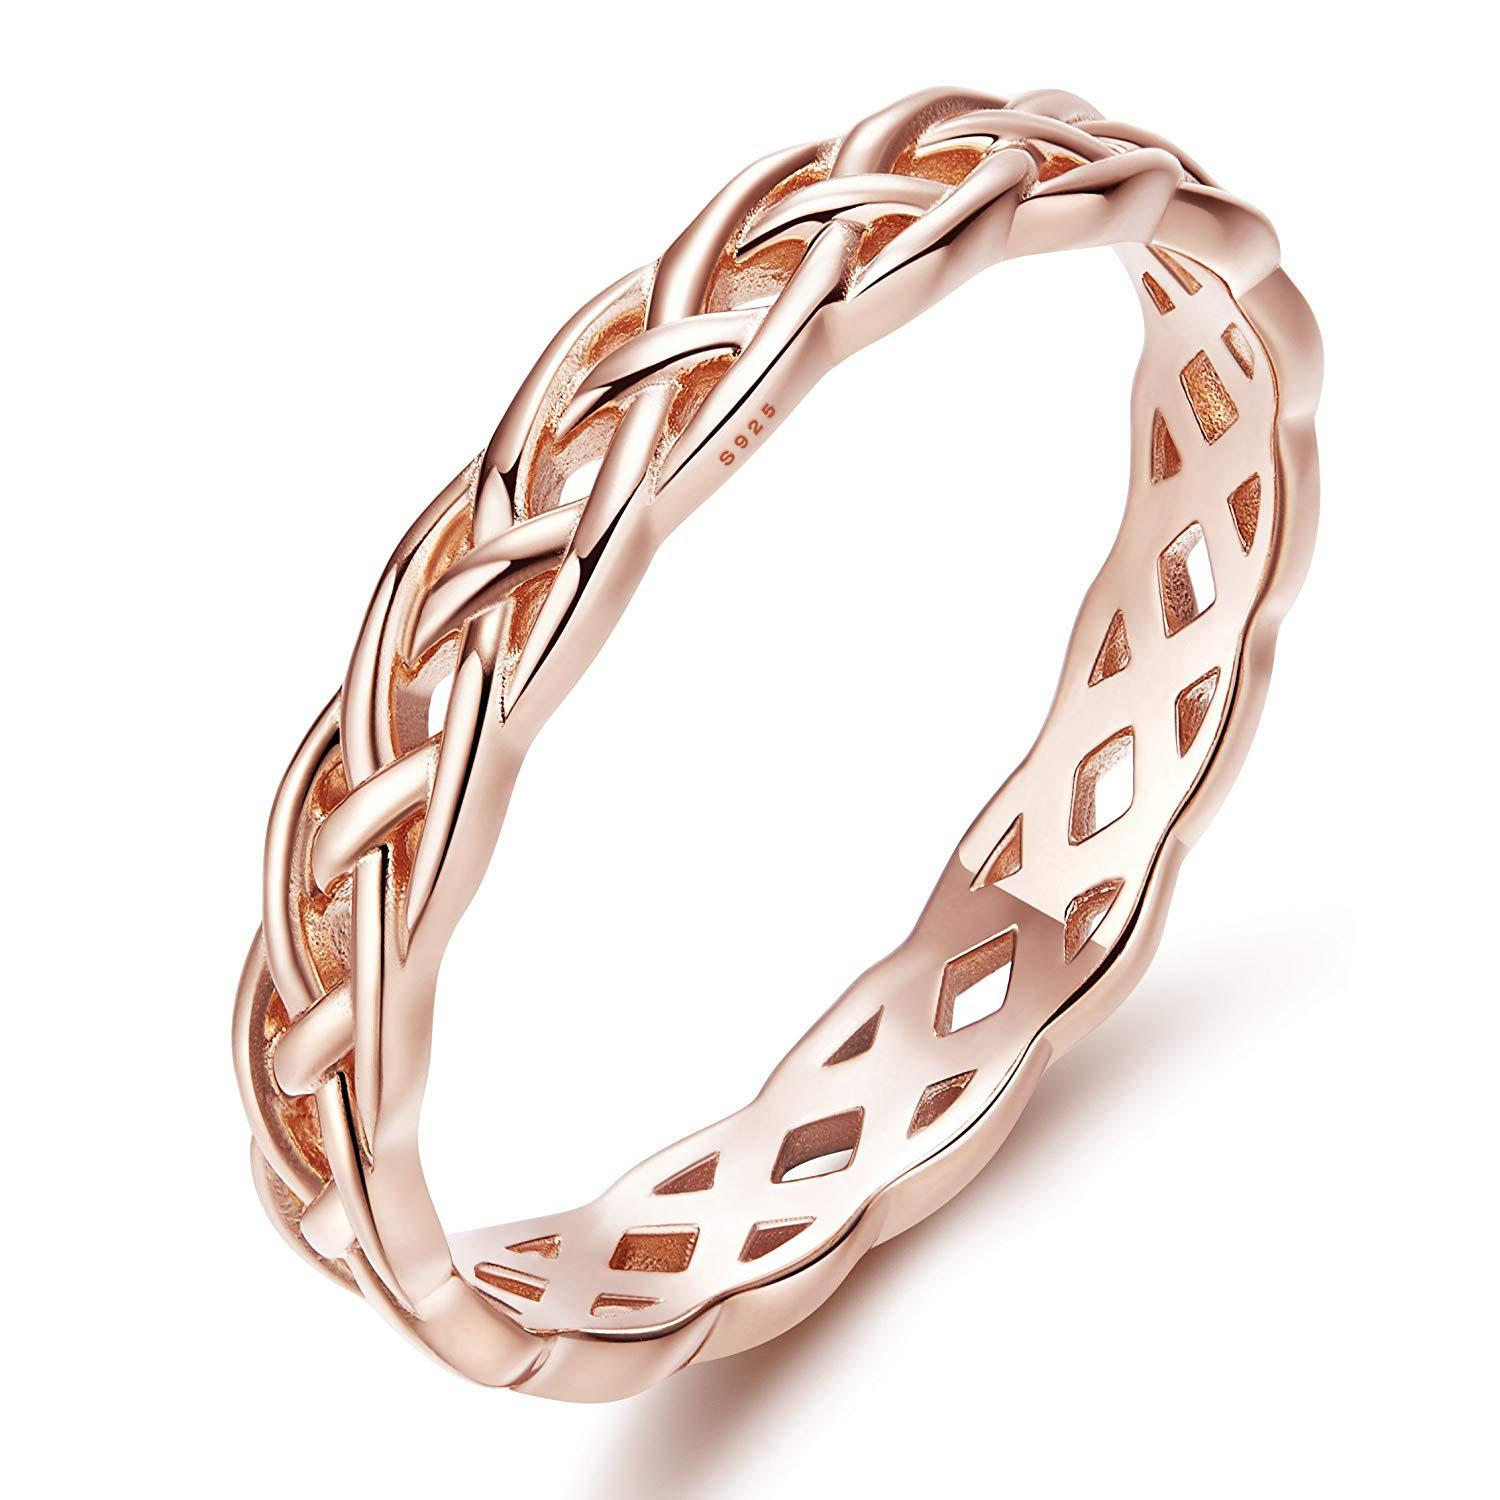 Semaid Women 4mm Celtic Knot Eternity Band 925 Sterling Silver Ring Size 6-10 By Wripples.